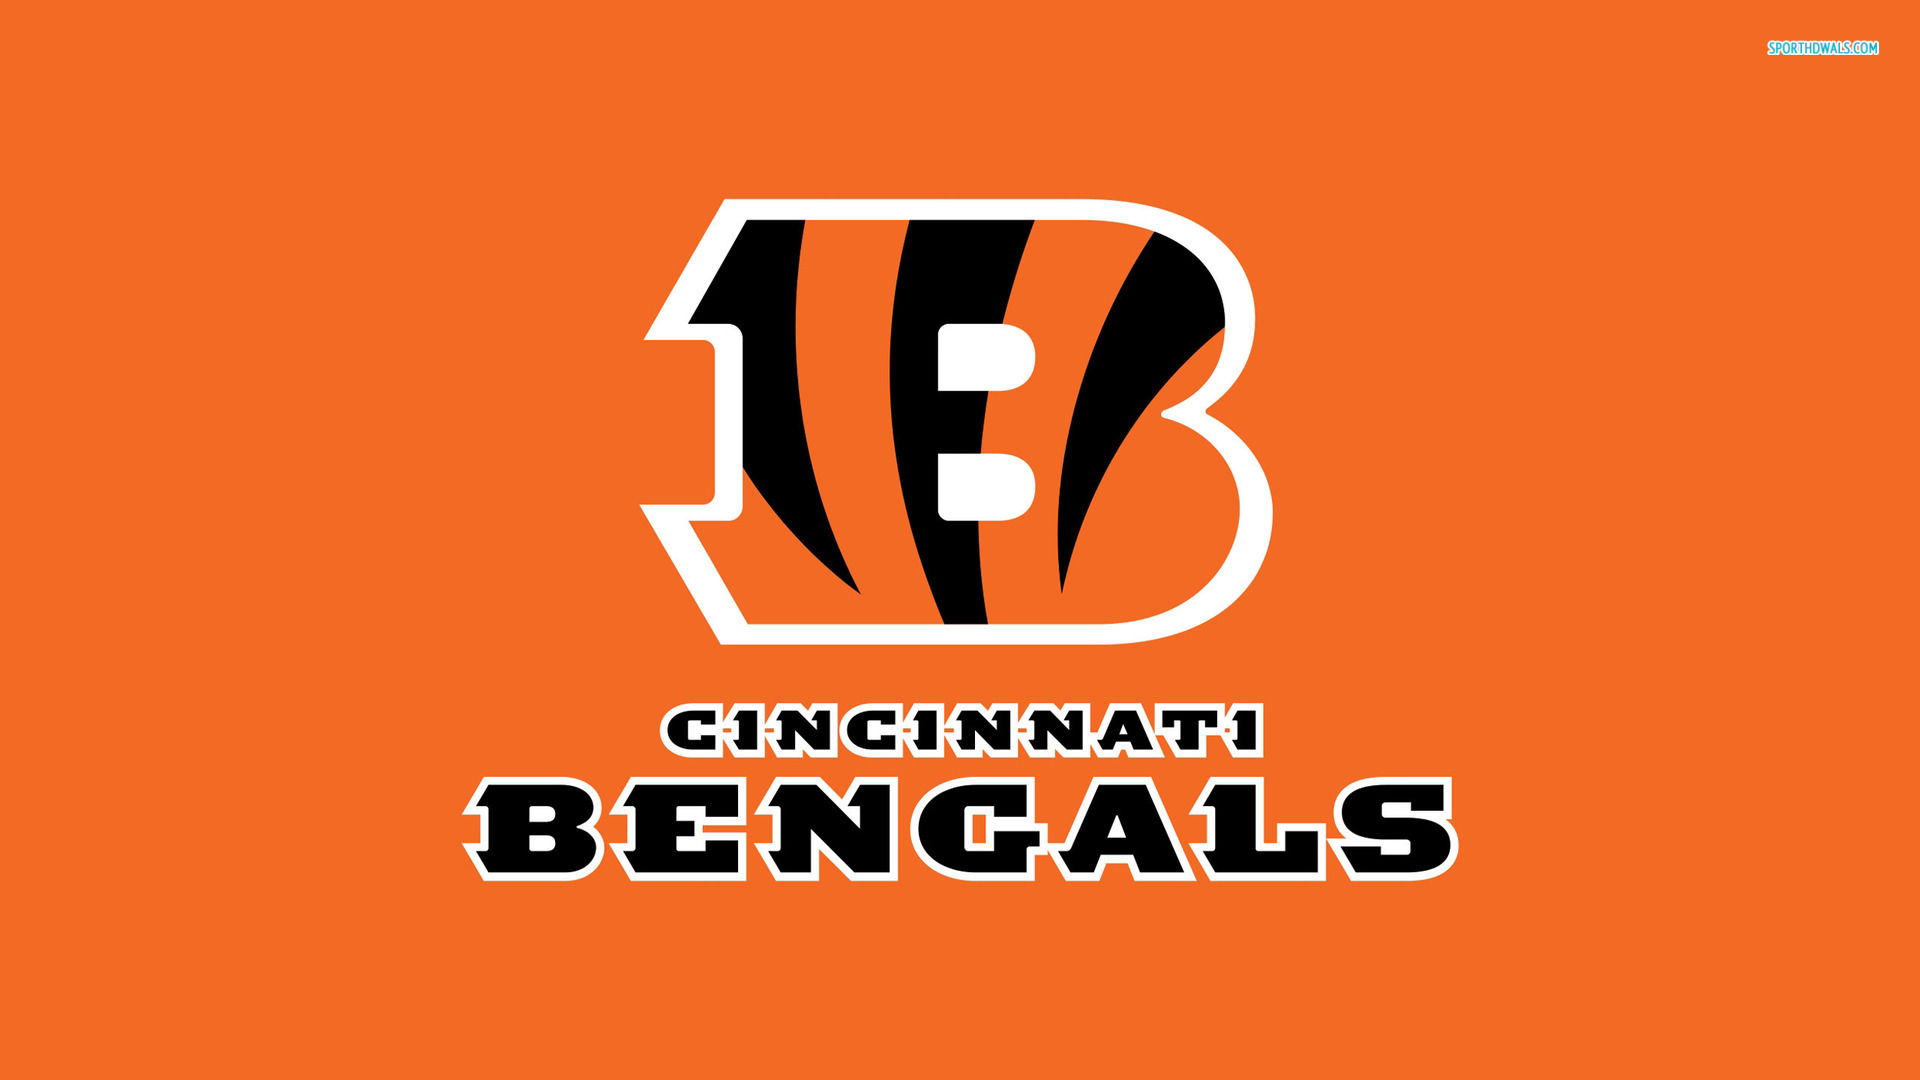 Image for Bengals Wallpaper